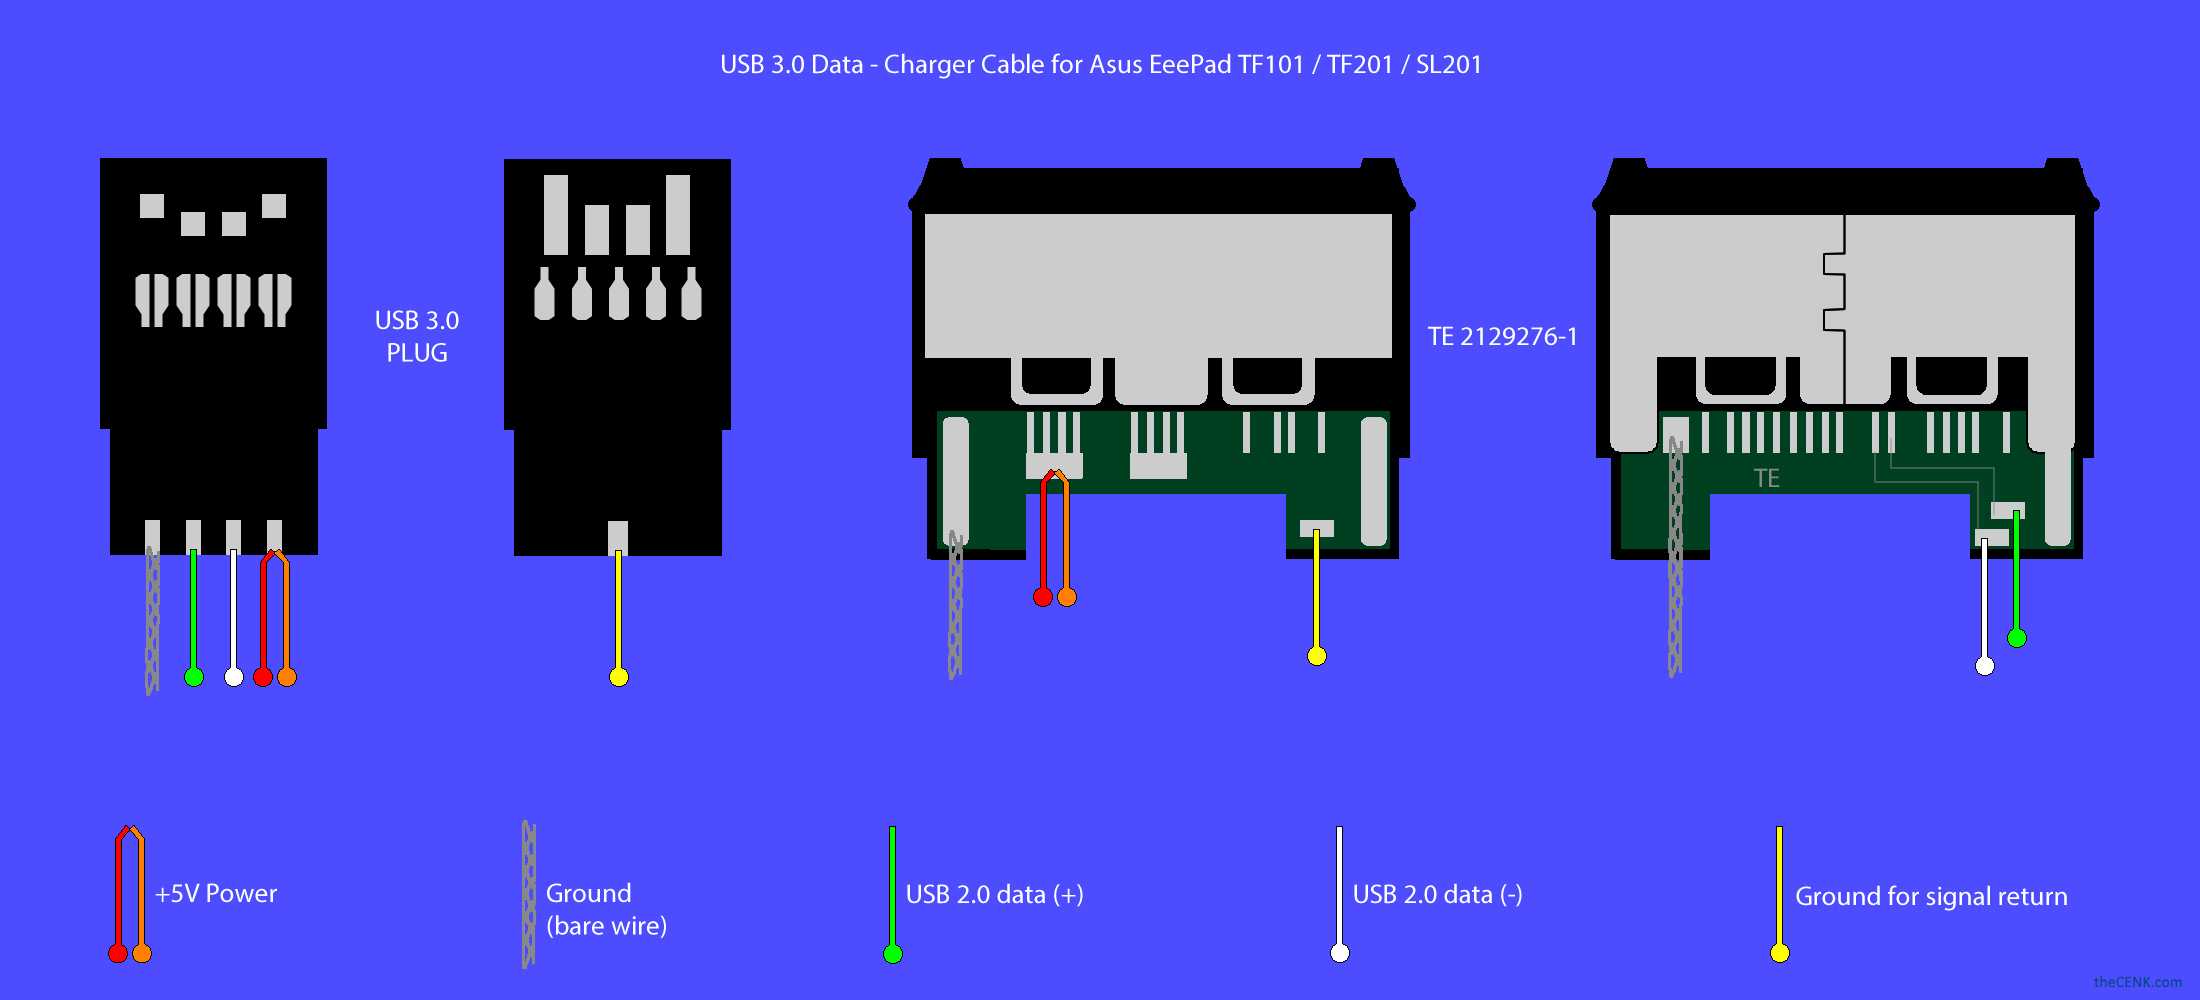 Usb 3.0 Data – Charger Cable For Asus Eeepad Tf101 / Tf201 / Sl201 - Usb 3.0 21-Pin Cable Wiring Diagram